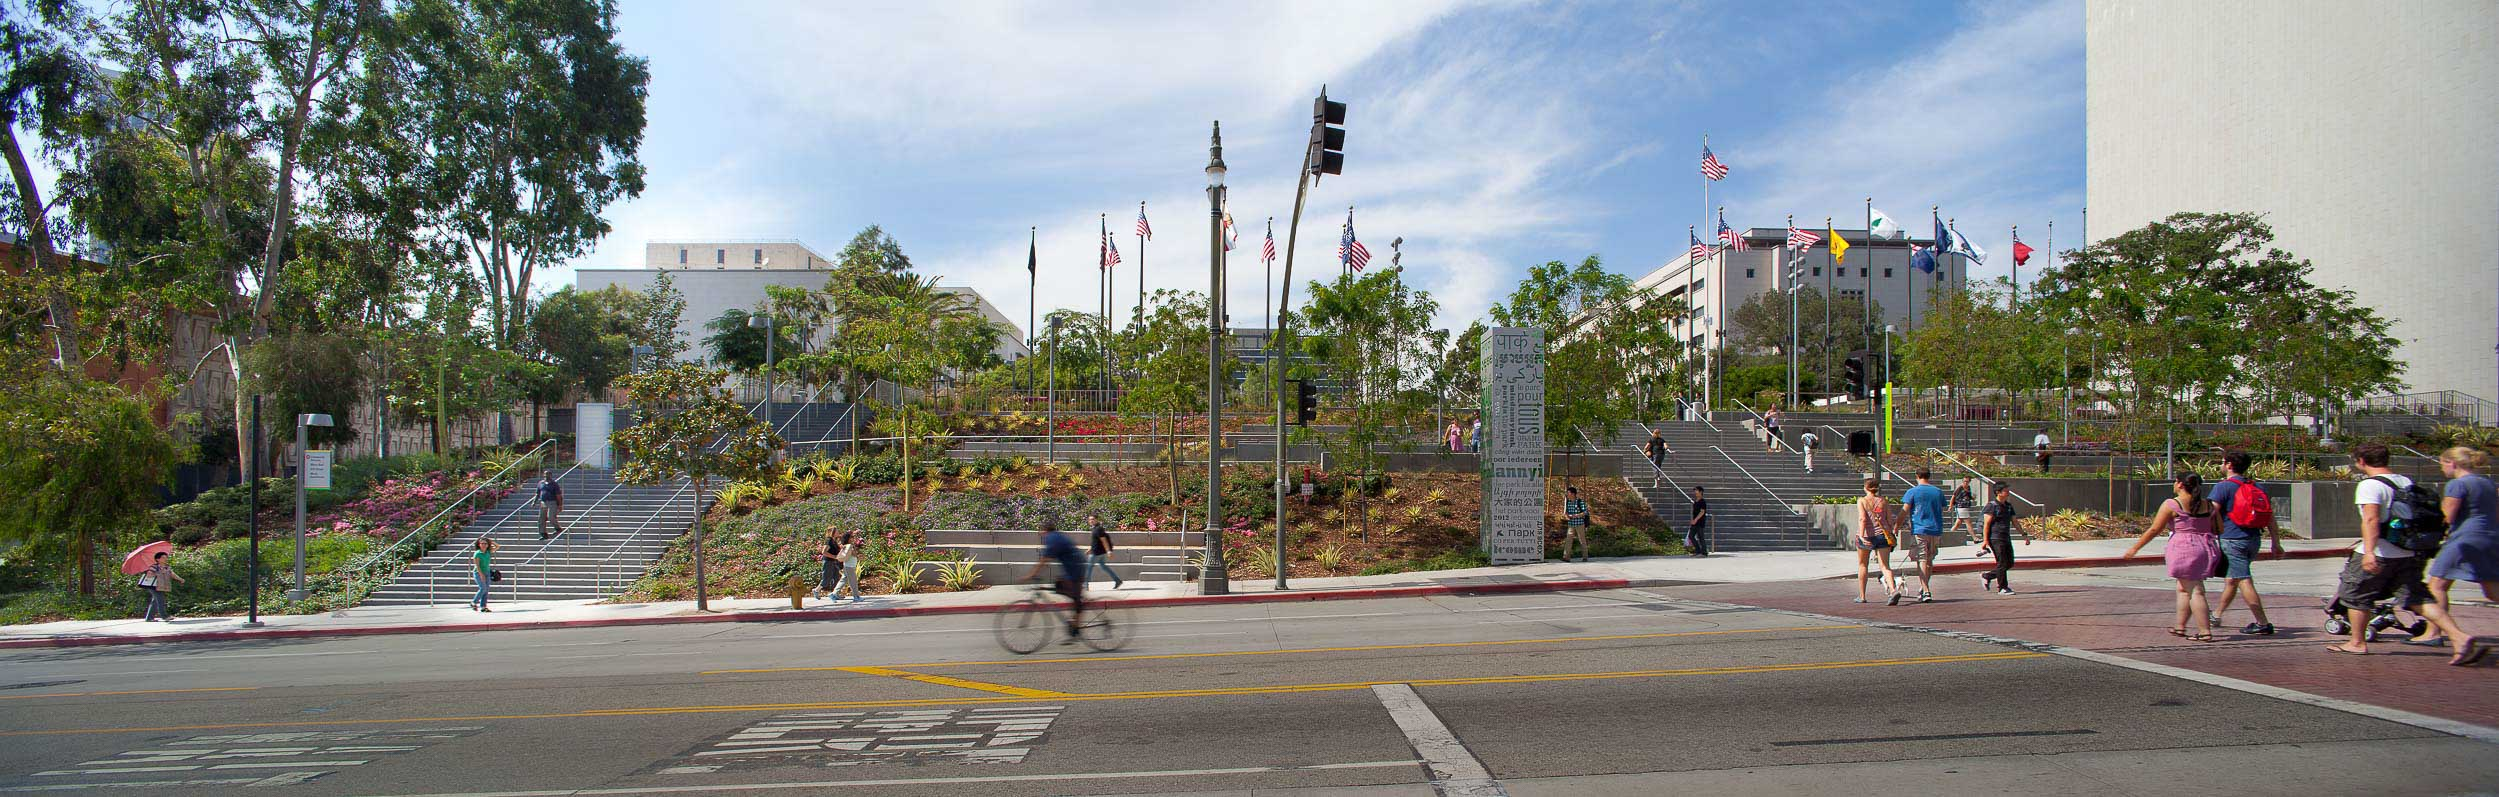 Street view of grand park stairs with people riding their bikes and pedestrians walking up